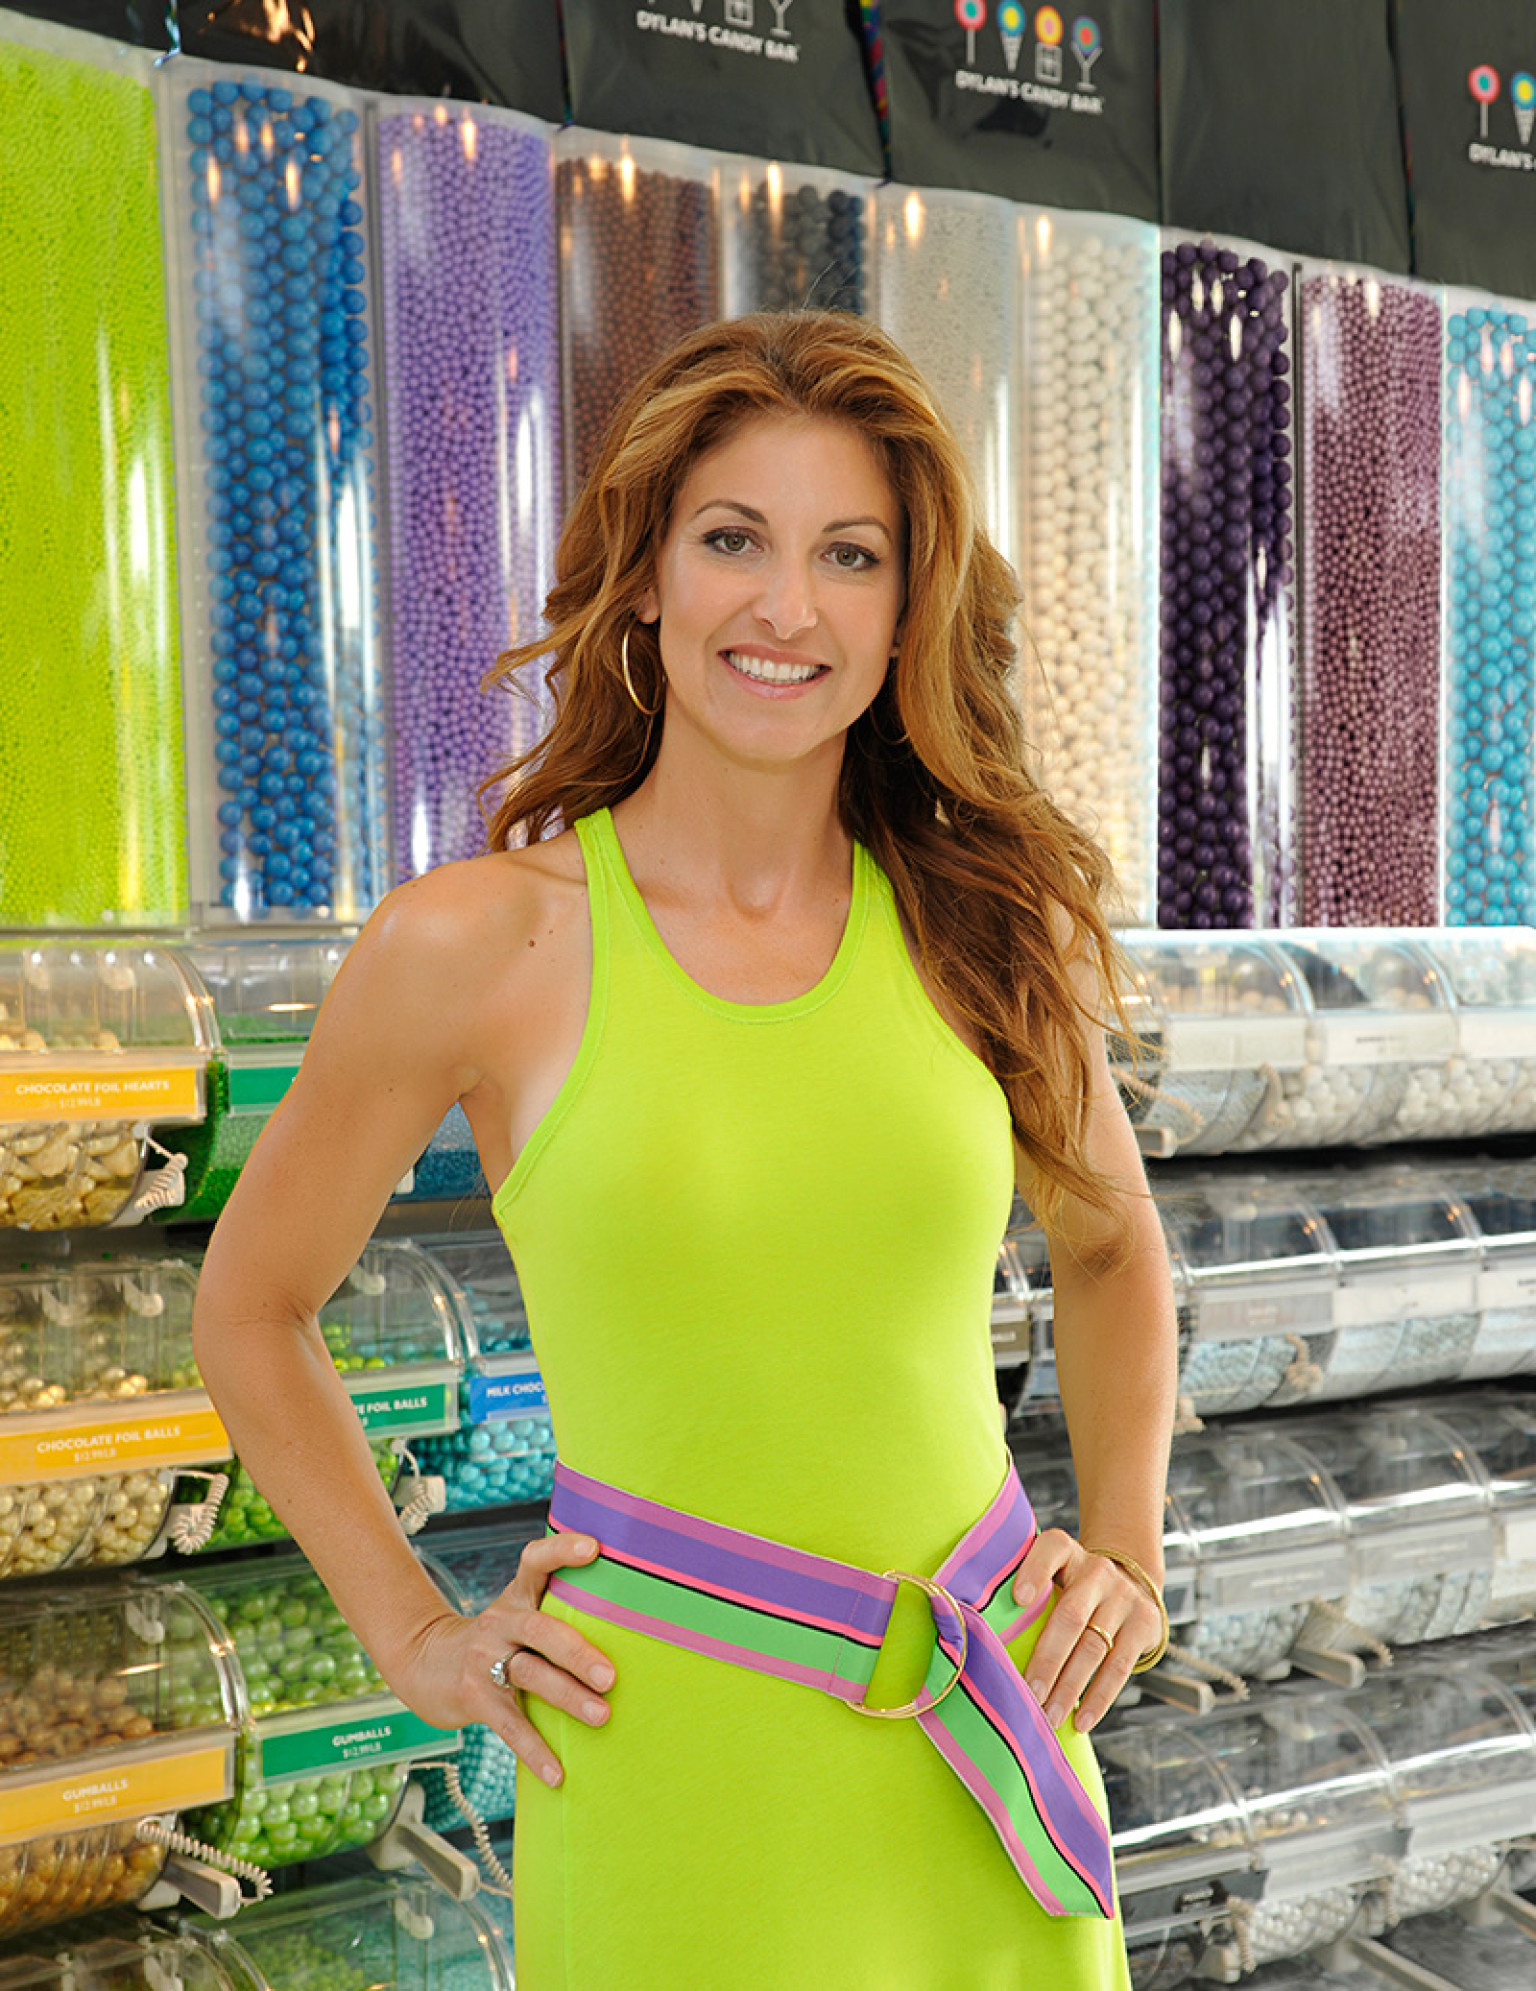 Dylan Lauren Founder Of Dylan 39 S Candy Bar Shares 6 Sweet